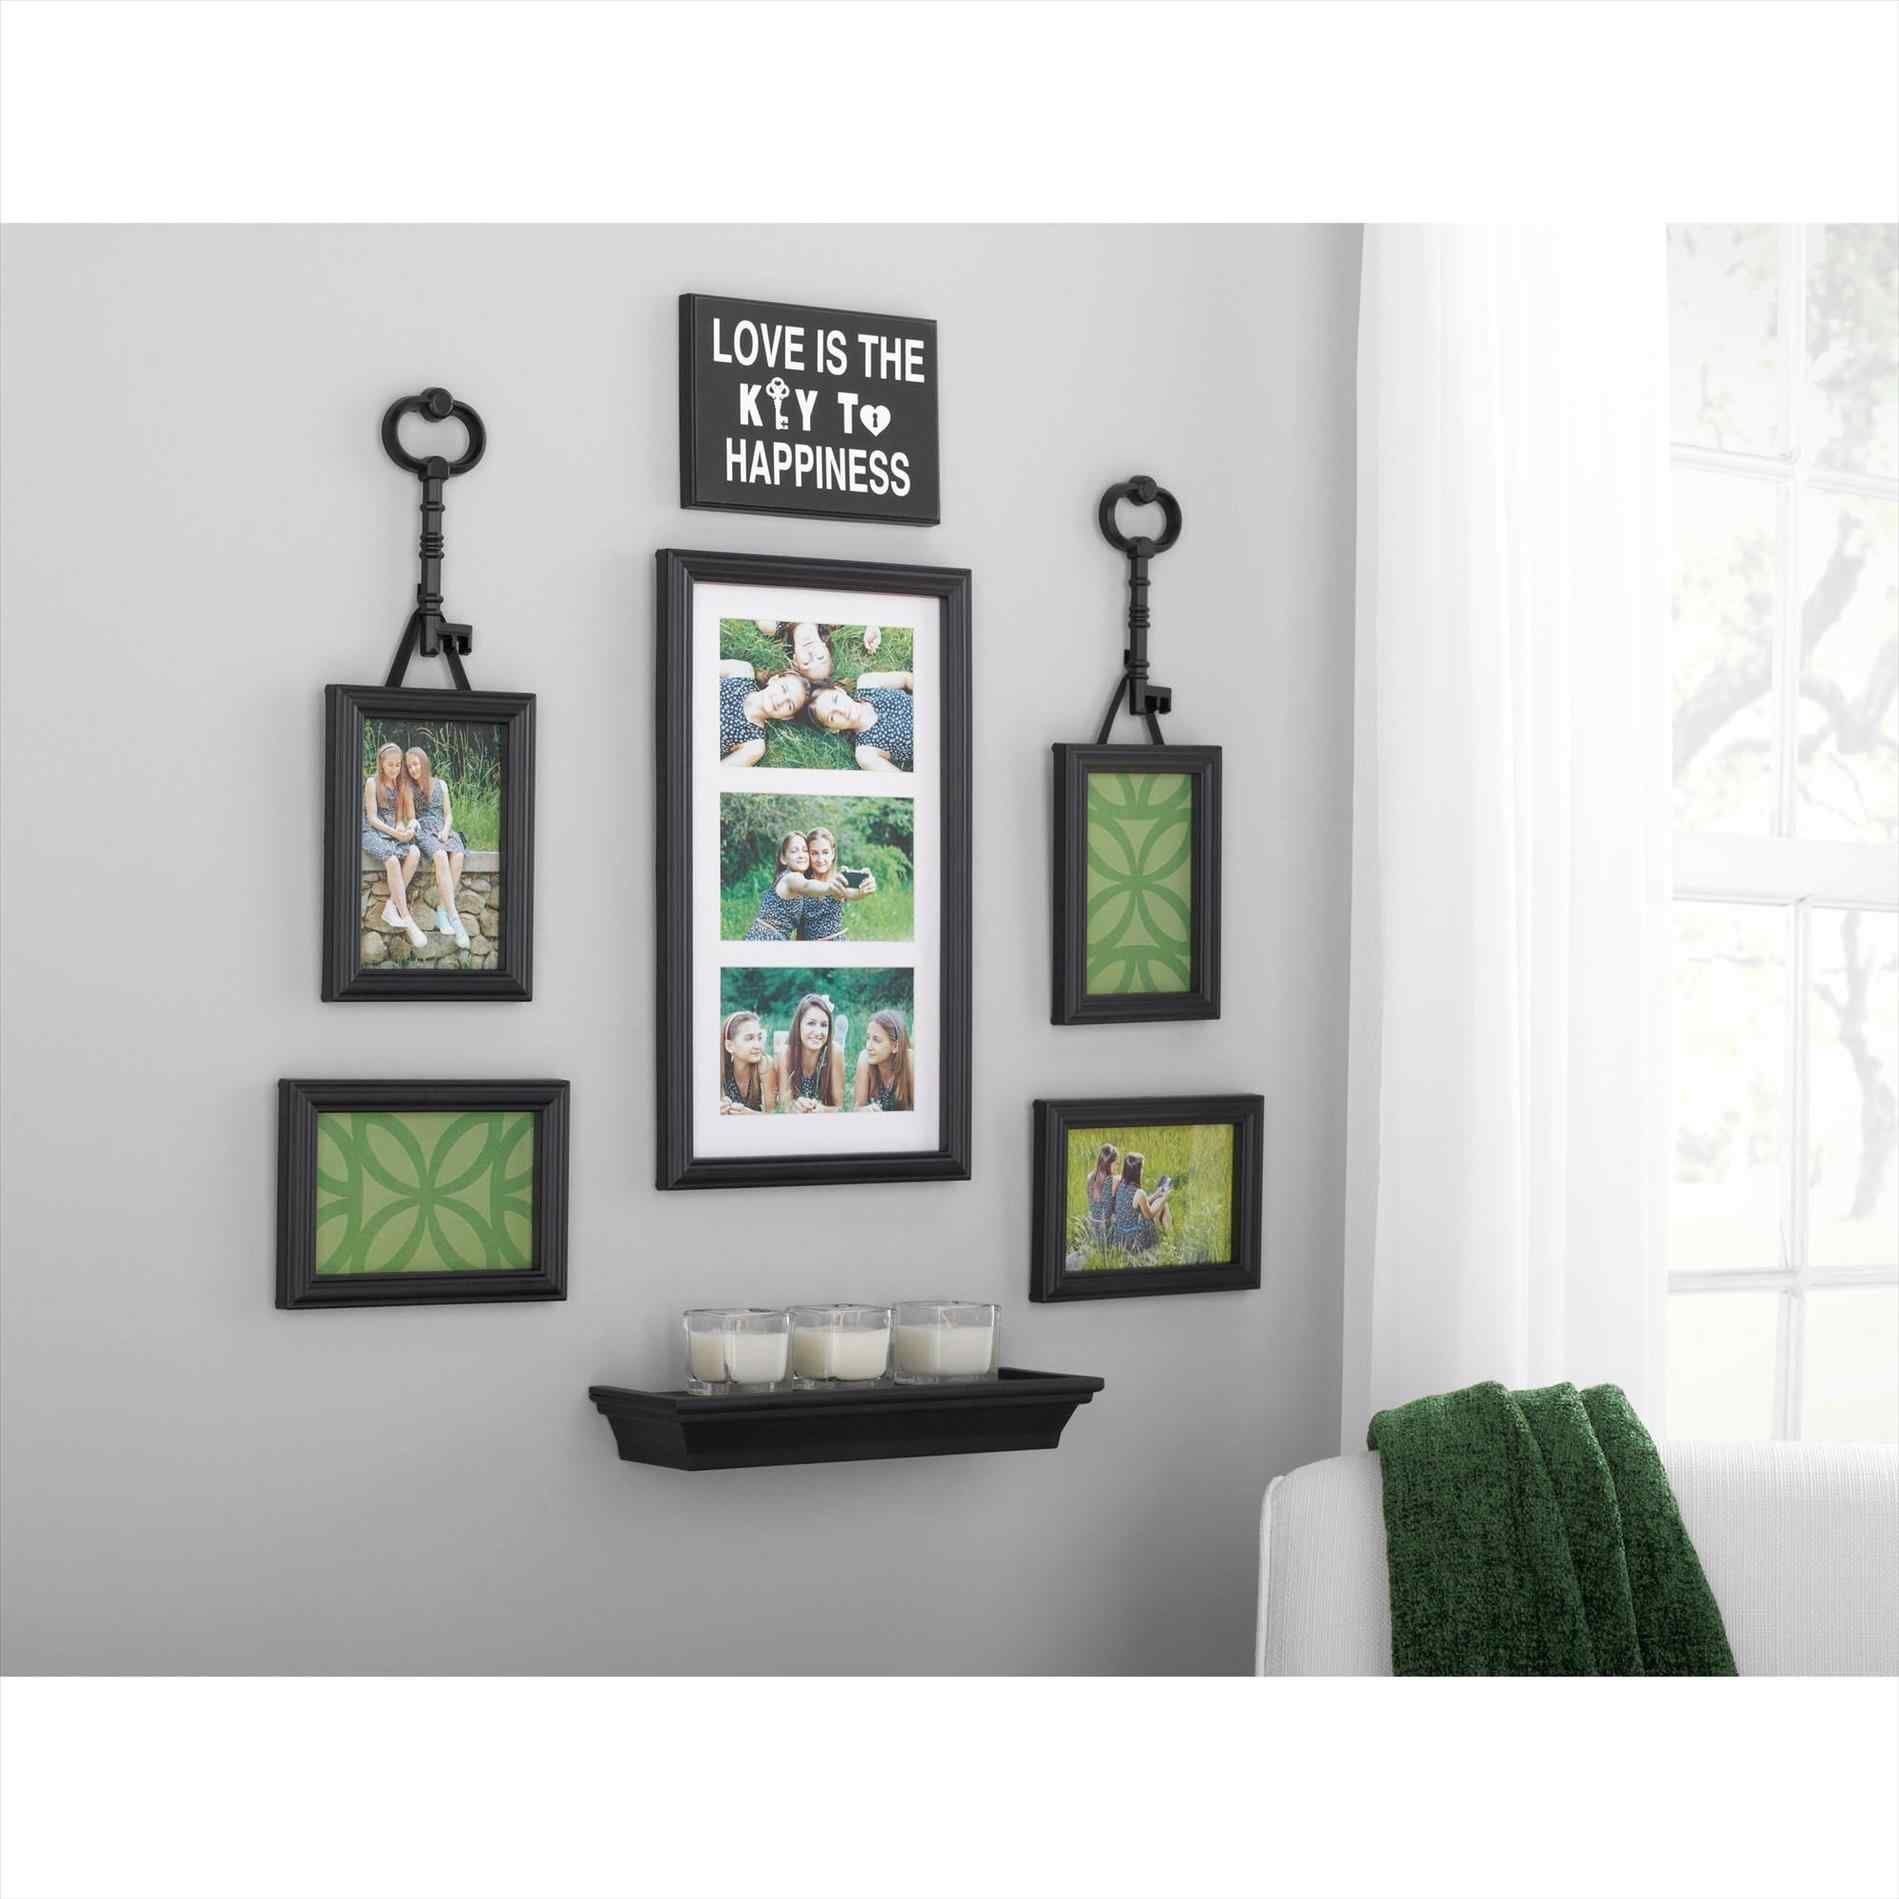 Epic How To Hang Canvas Art Without Frame 21 Pictures Https